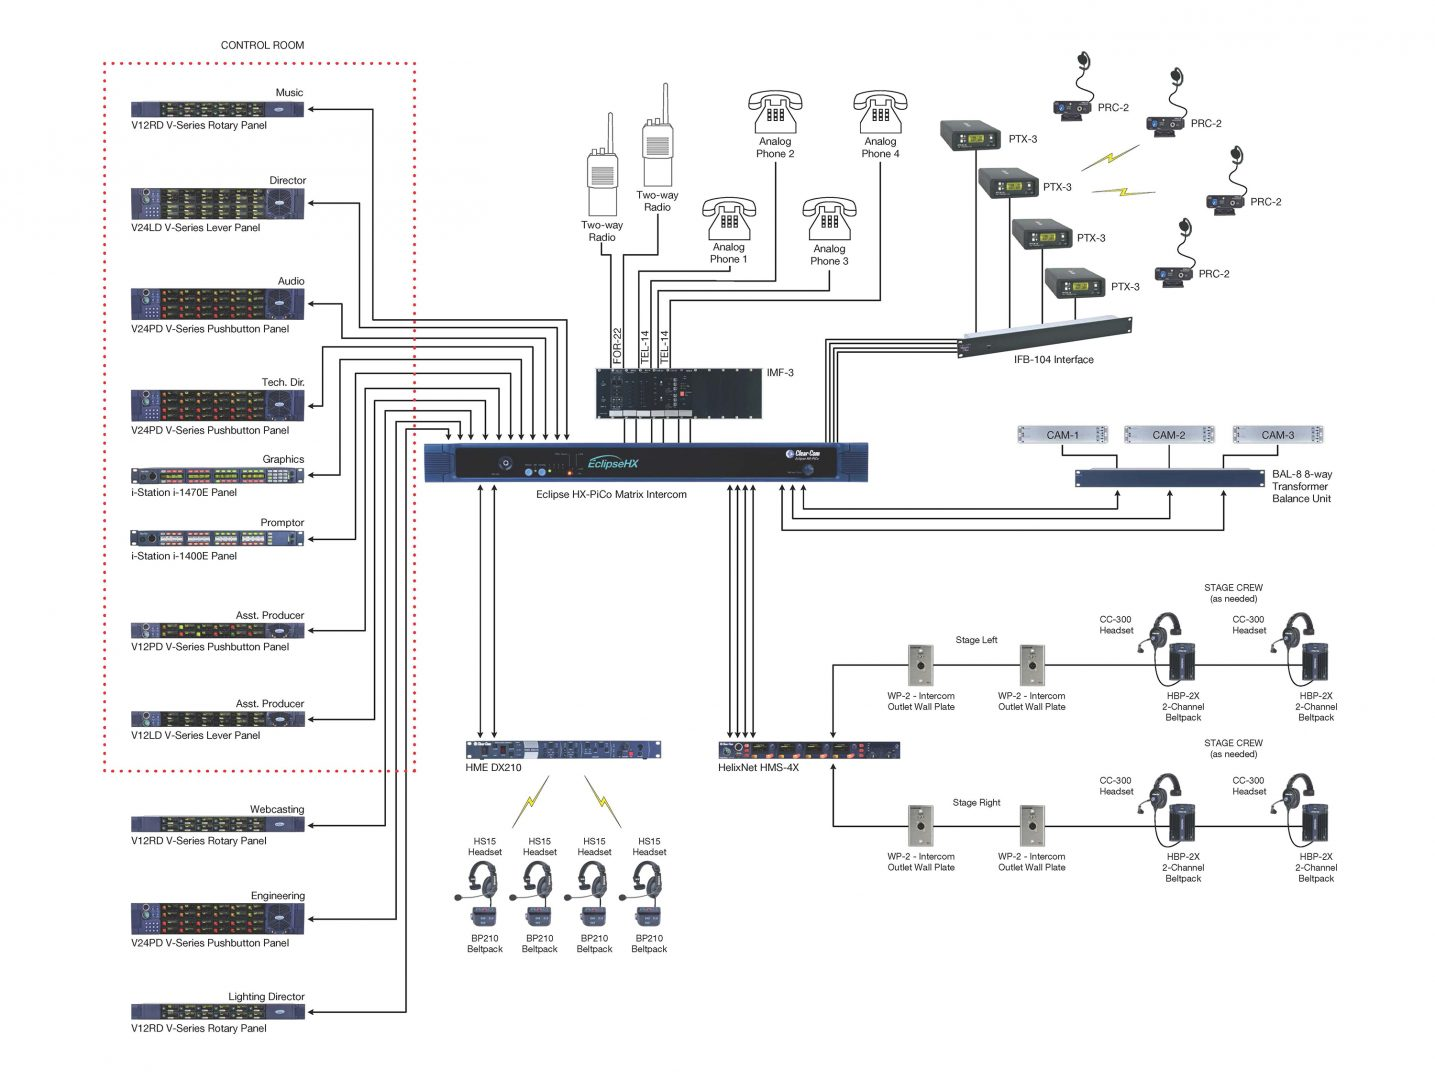 wireless network intercom wiring diagrams pictures